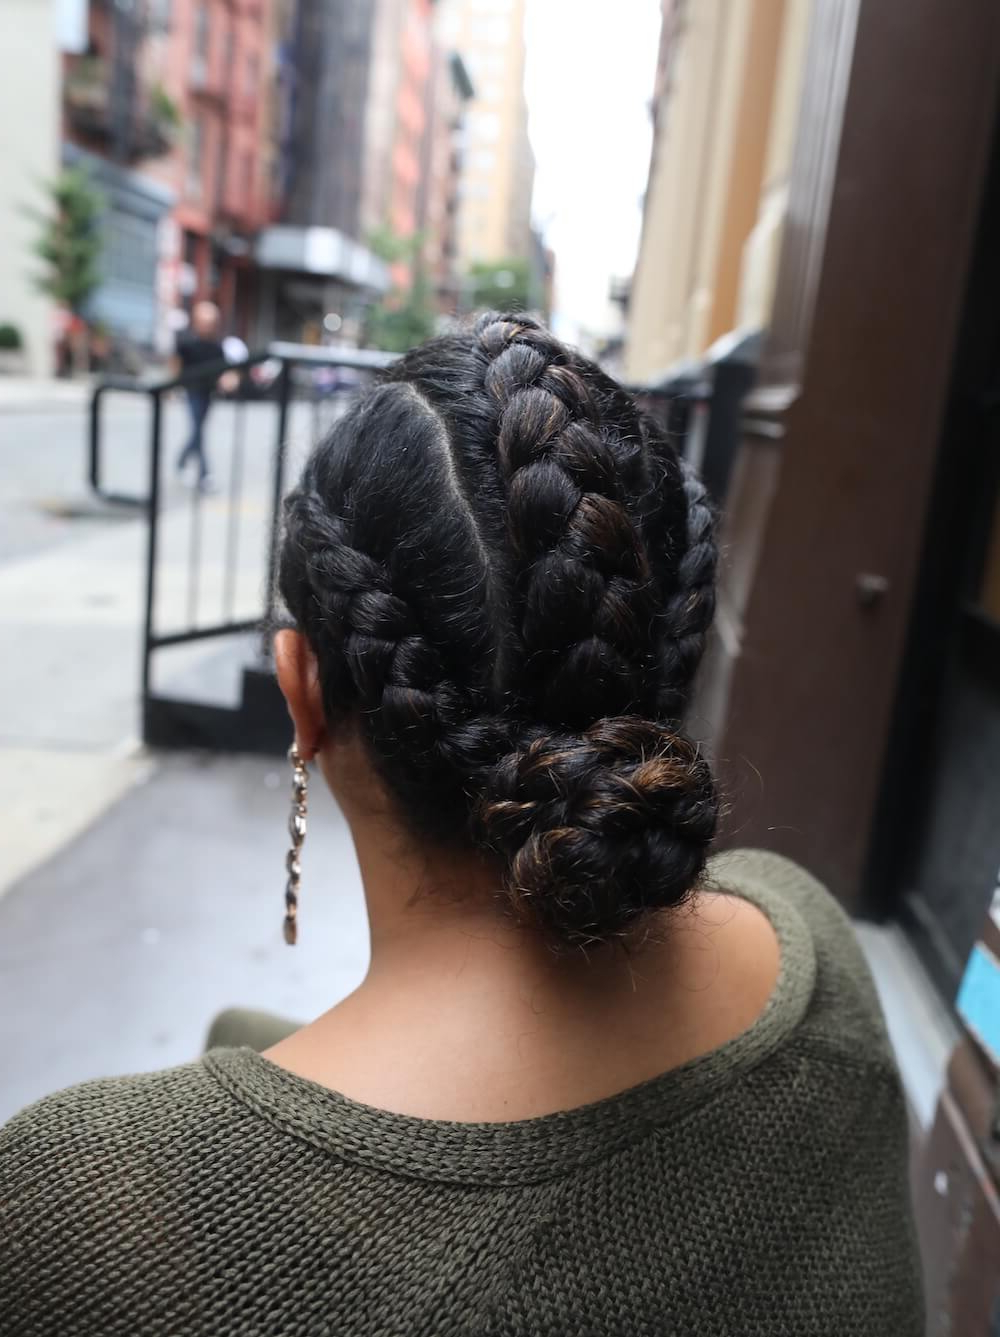 Devacurl 101: Different Ways On How To Braid Curly Hair Throughout Preferred Cornrows Tight Bun Under Braid Hairstyles (View 8 of 20)